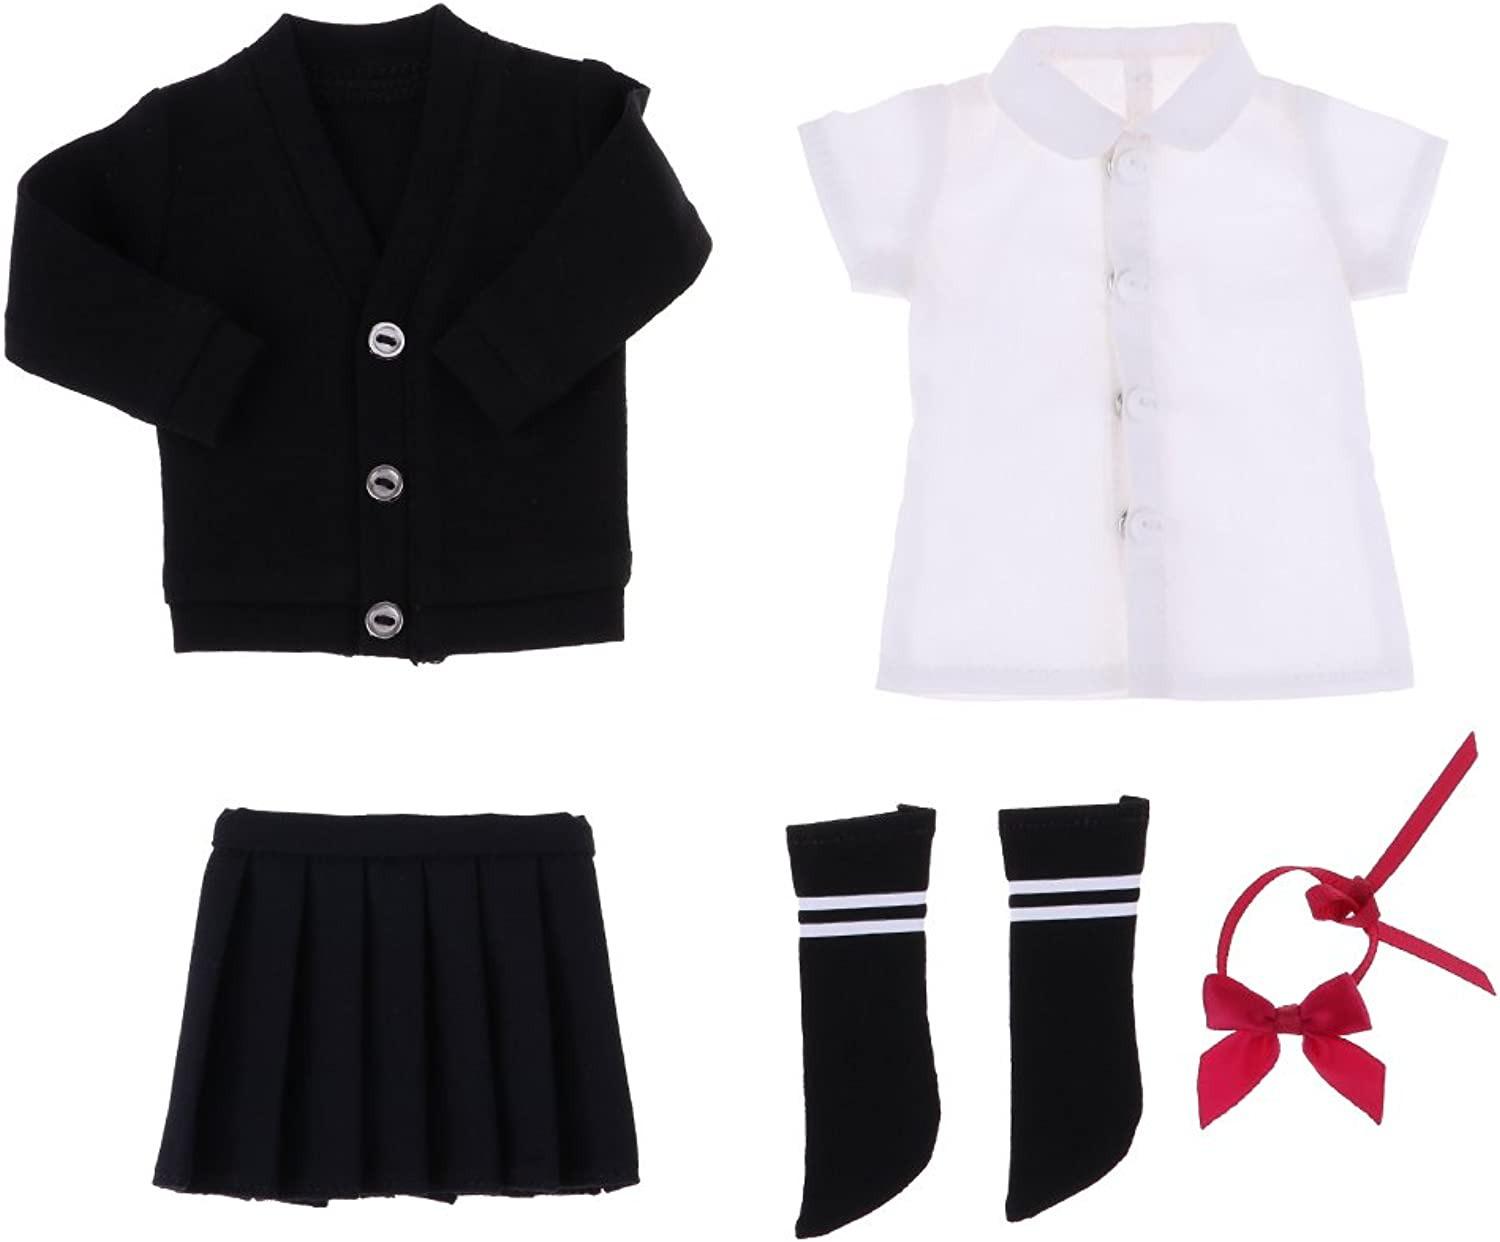 Prettyia 1 6 Scale BJD Doll Dress-up Accessory School Uniform Outfits Black And White